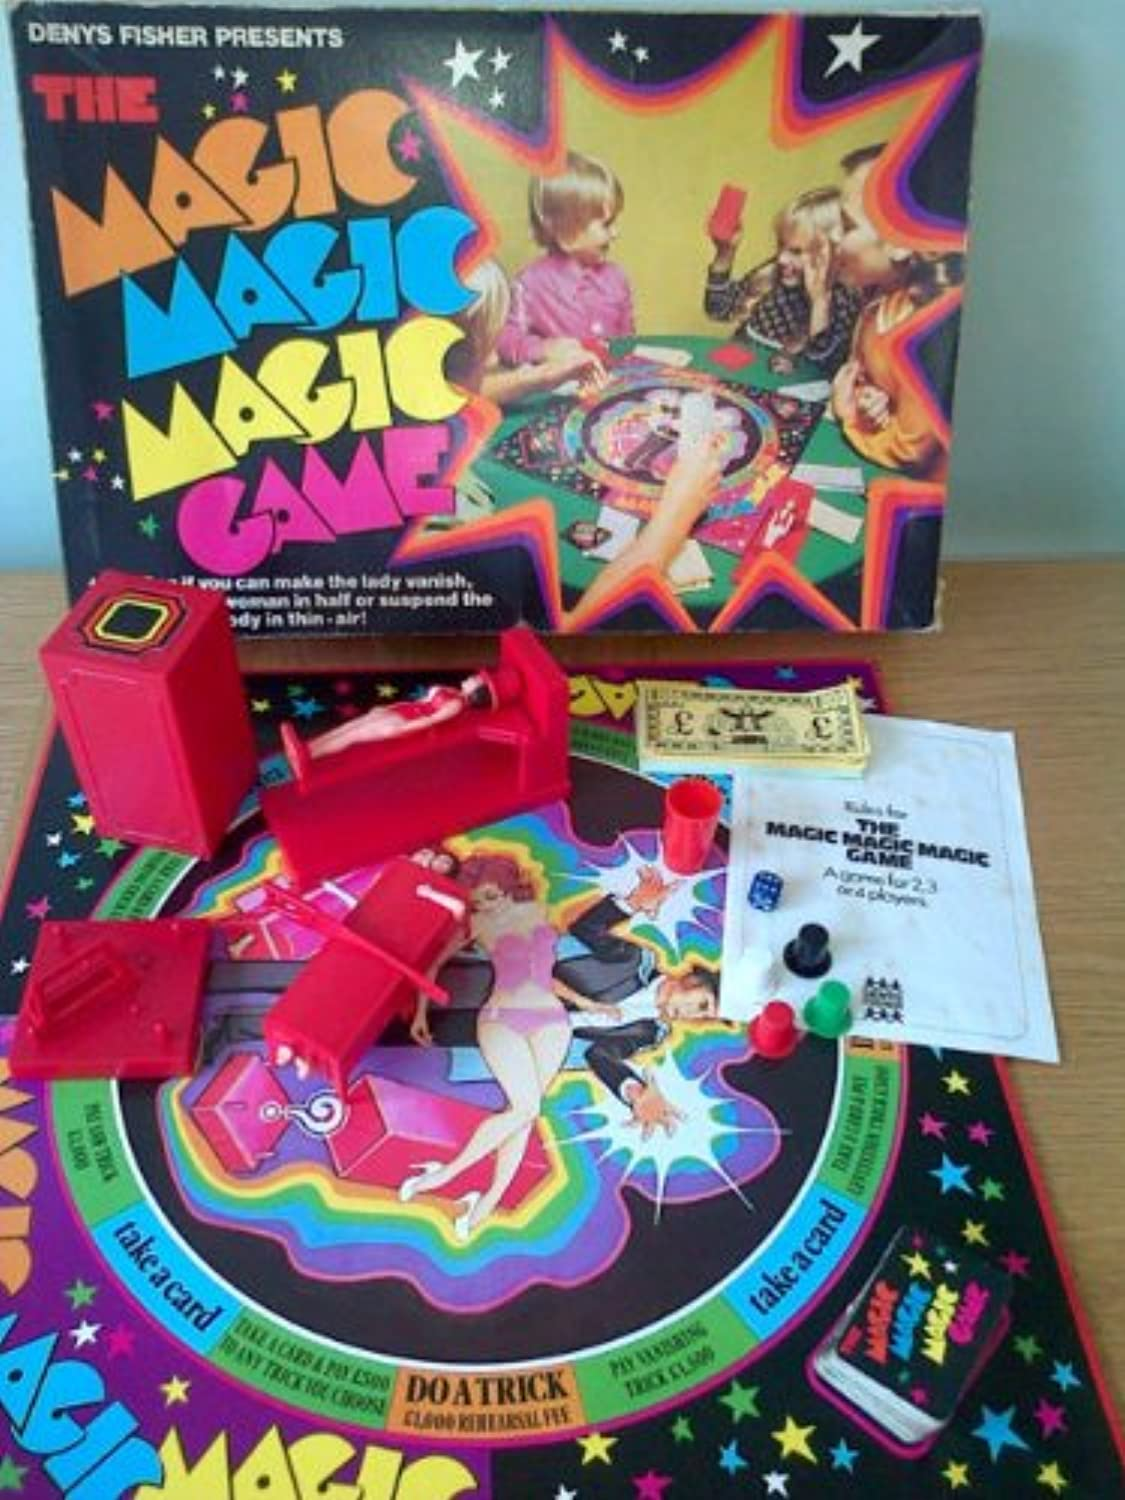 The MAGIC MAGIC MAGIC GAME. VINTAGE 1970's Board Game by DENYS FISHER. Great Magic Tricks